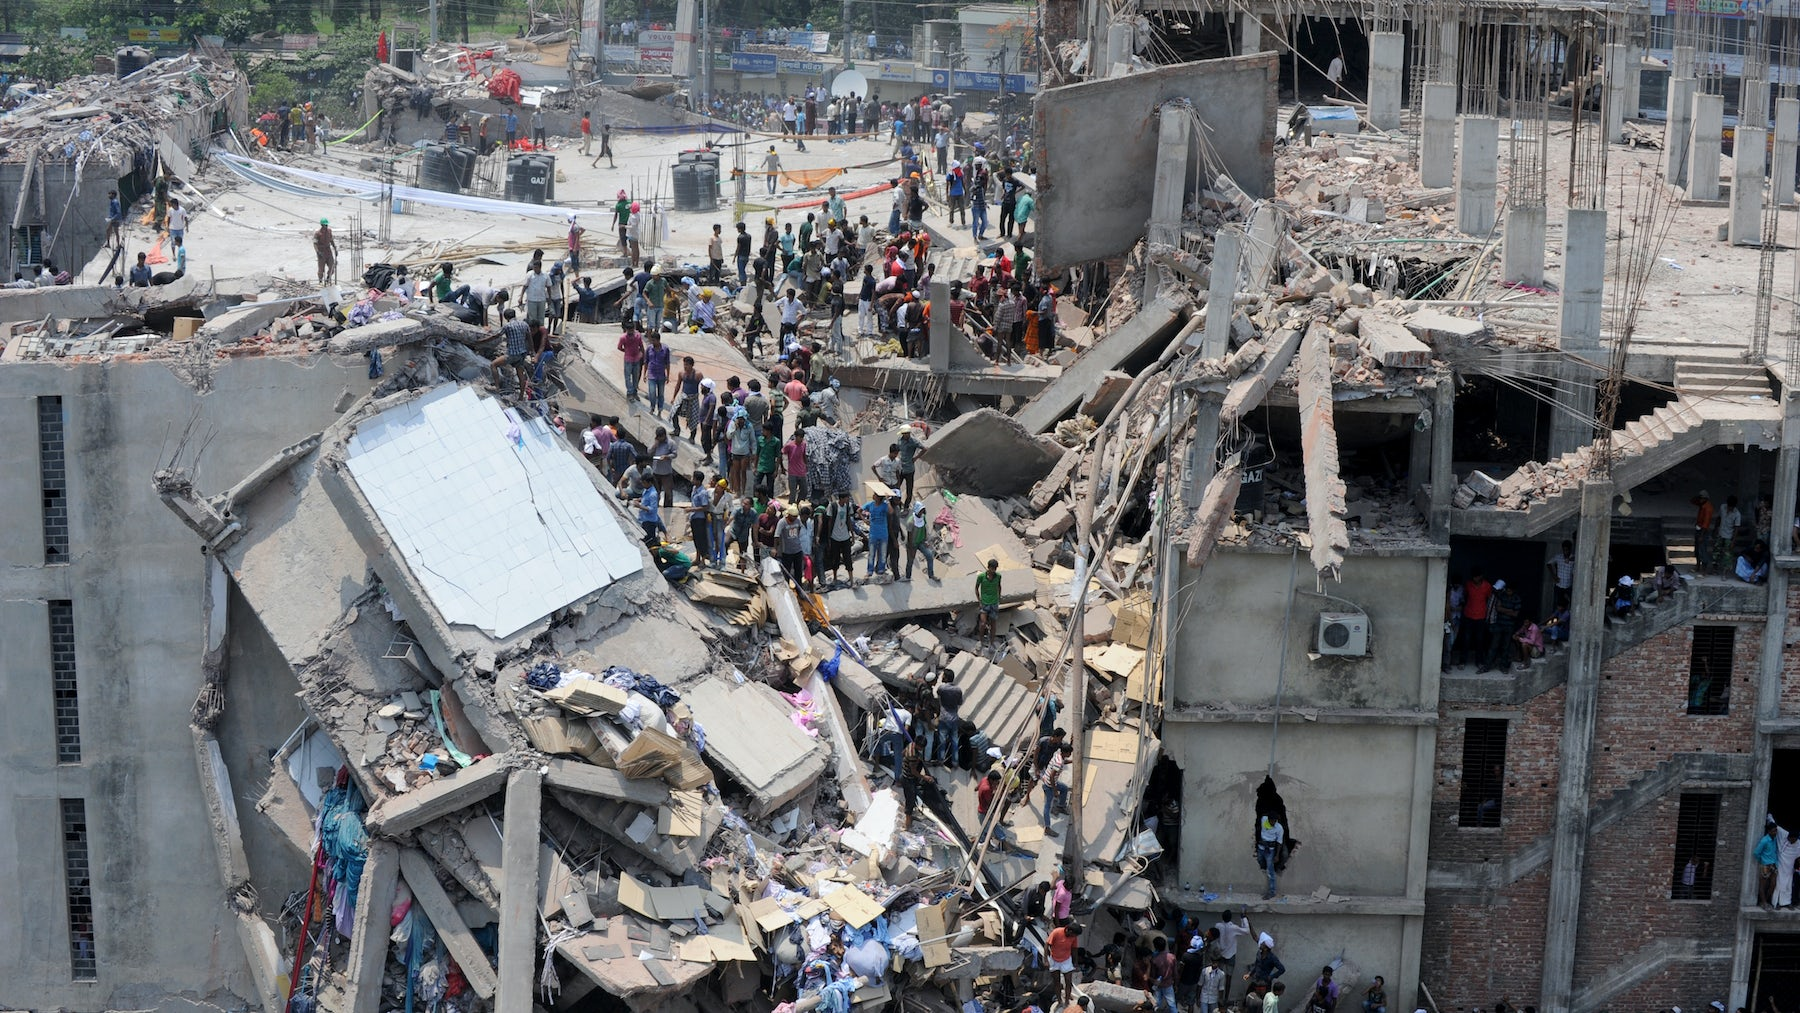 The Accord was set up after the Rana Plaza diaster in 2013 | Source: Shutterstock